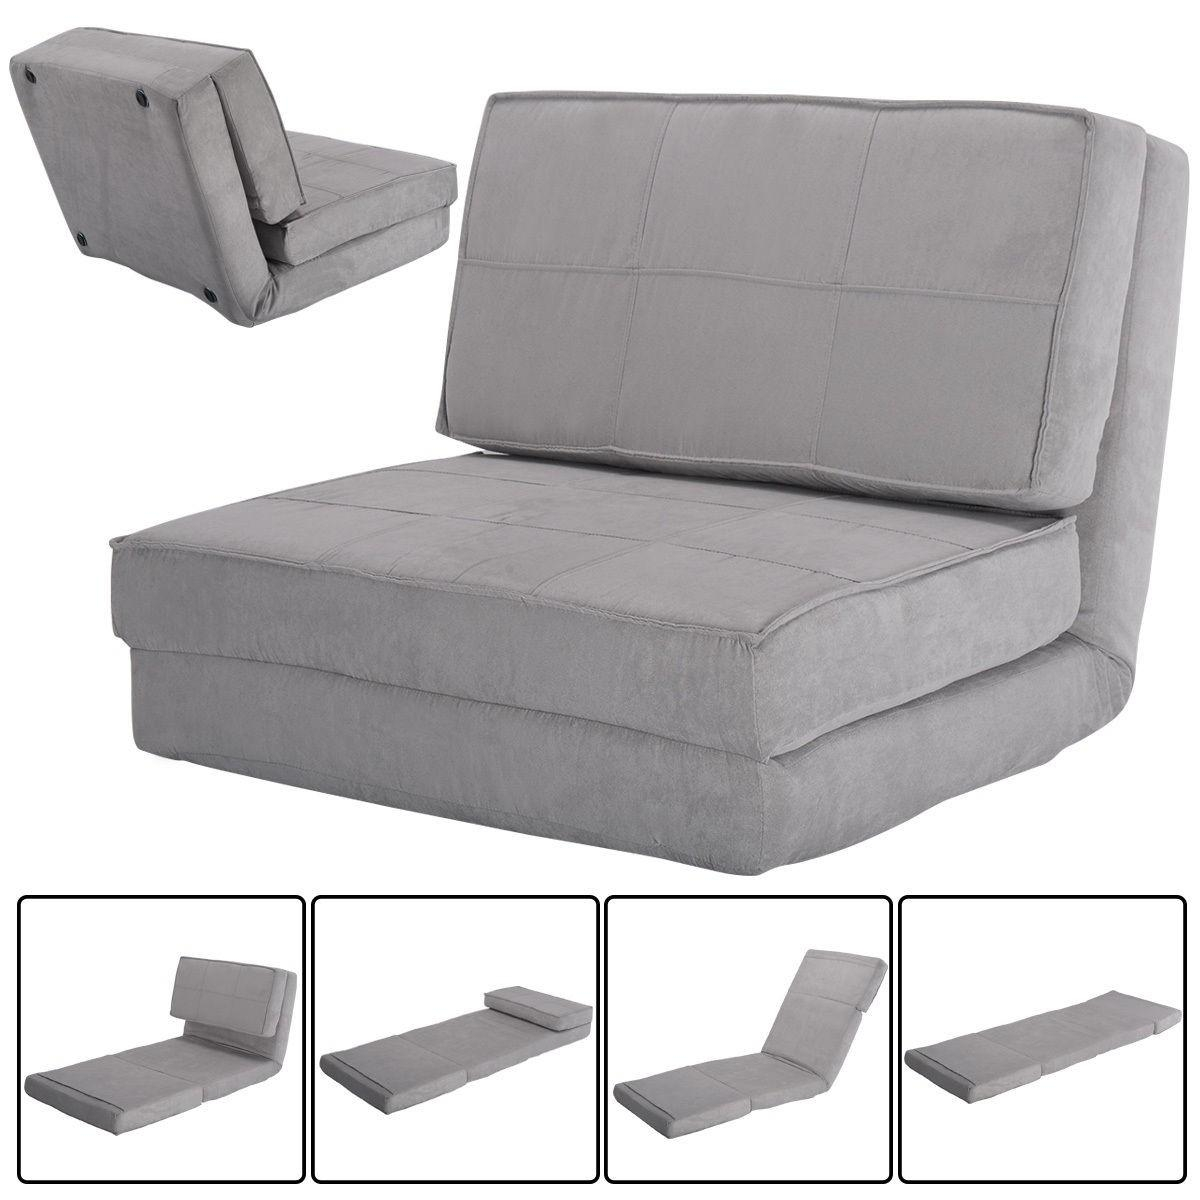 folding bed sofa set large bean bag 20 best collection of chairs ideas